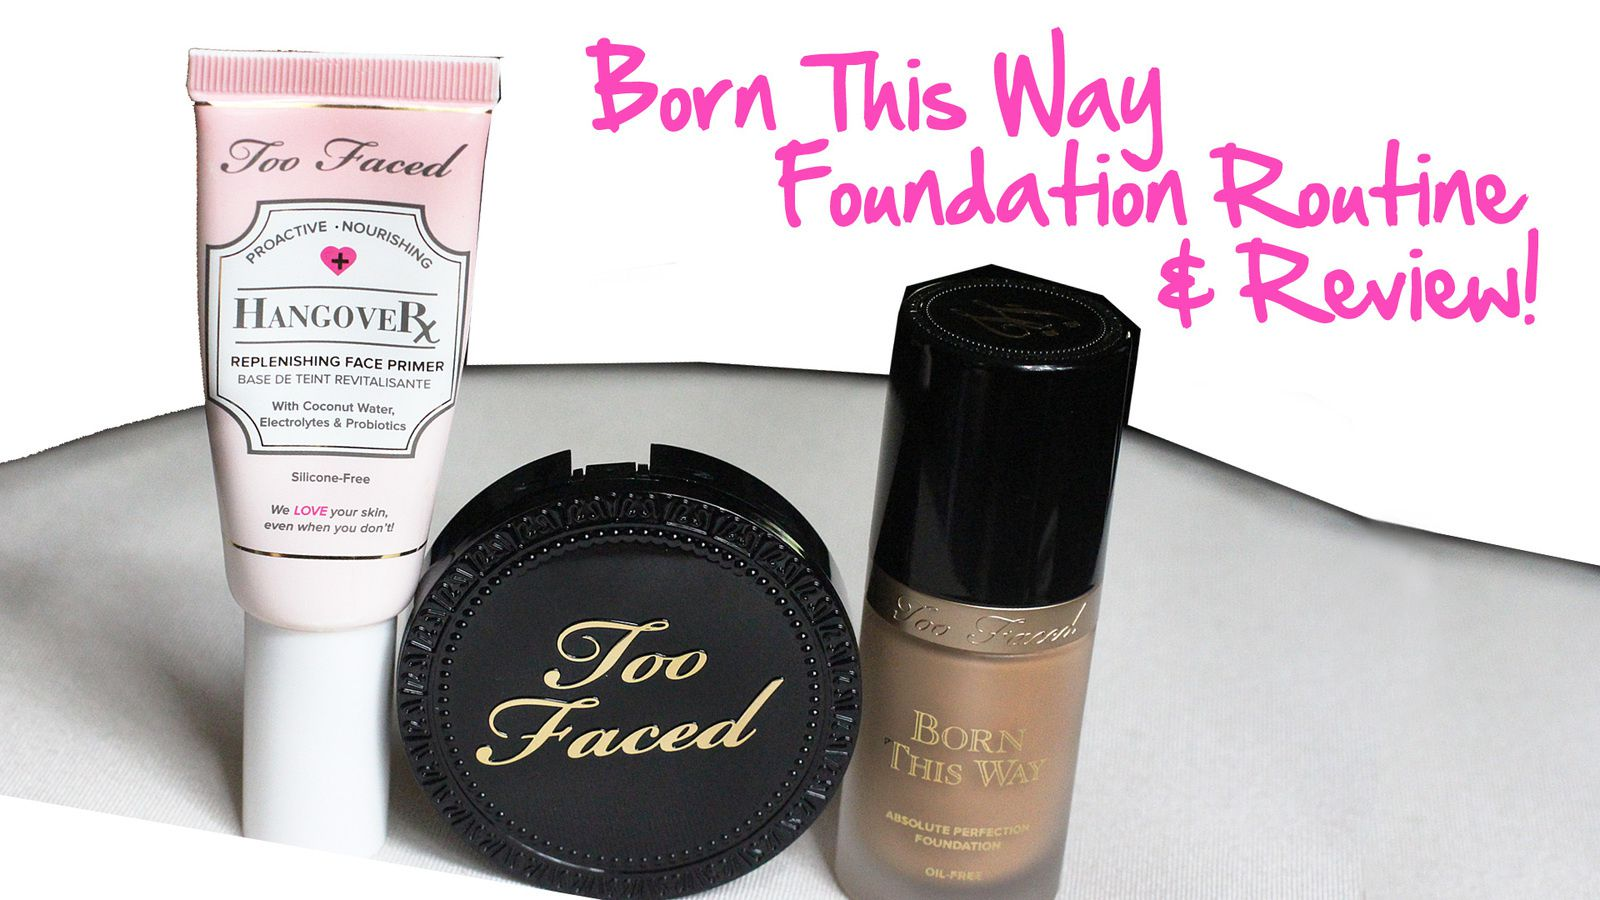 Too Faced Born This Way Foundation Review & Routine